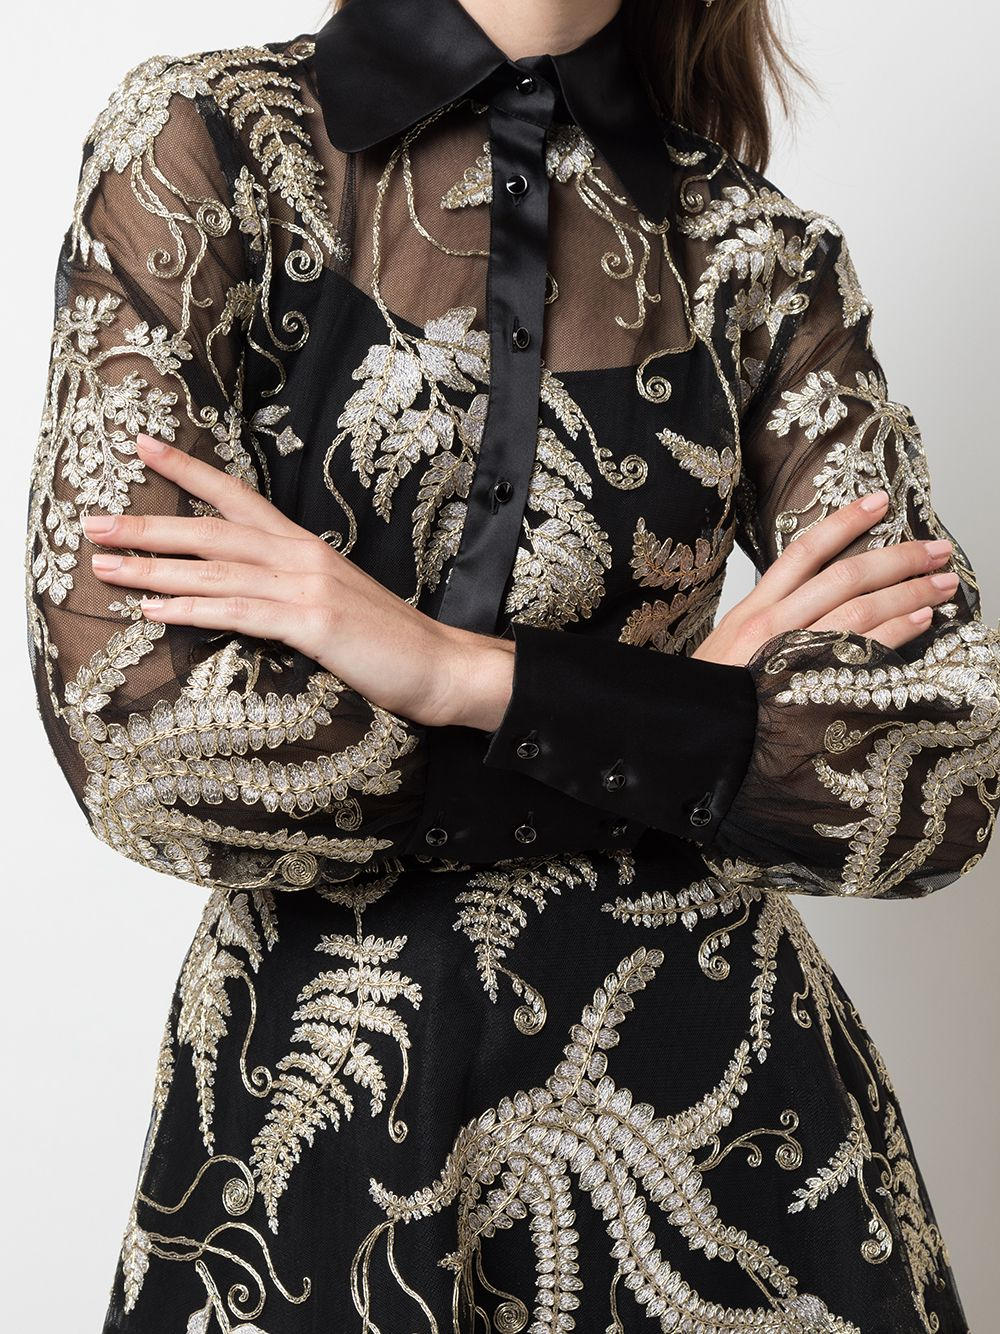 Black And Metallic Corded Fern Lace Blouse